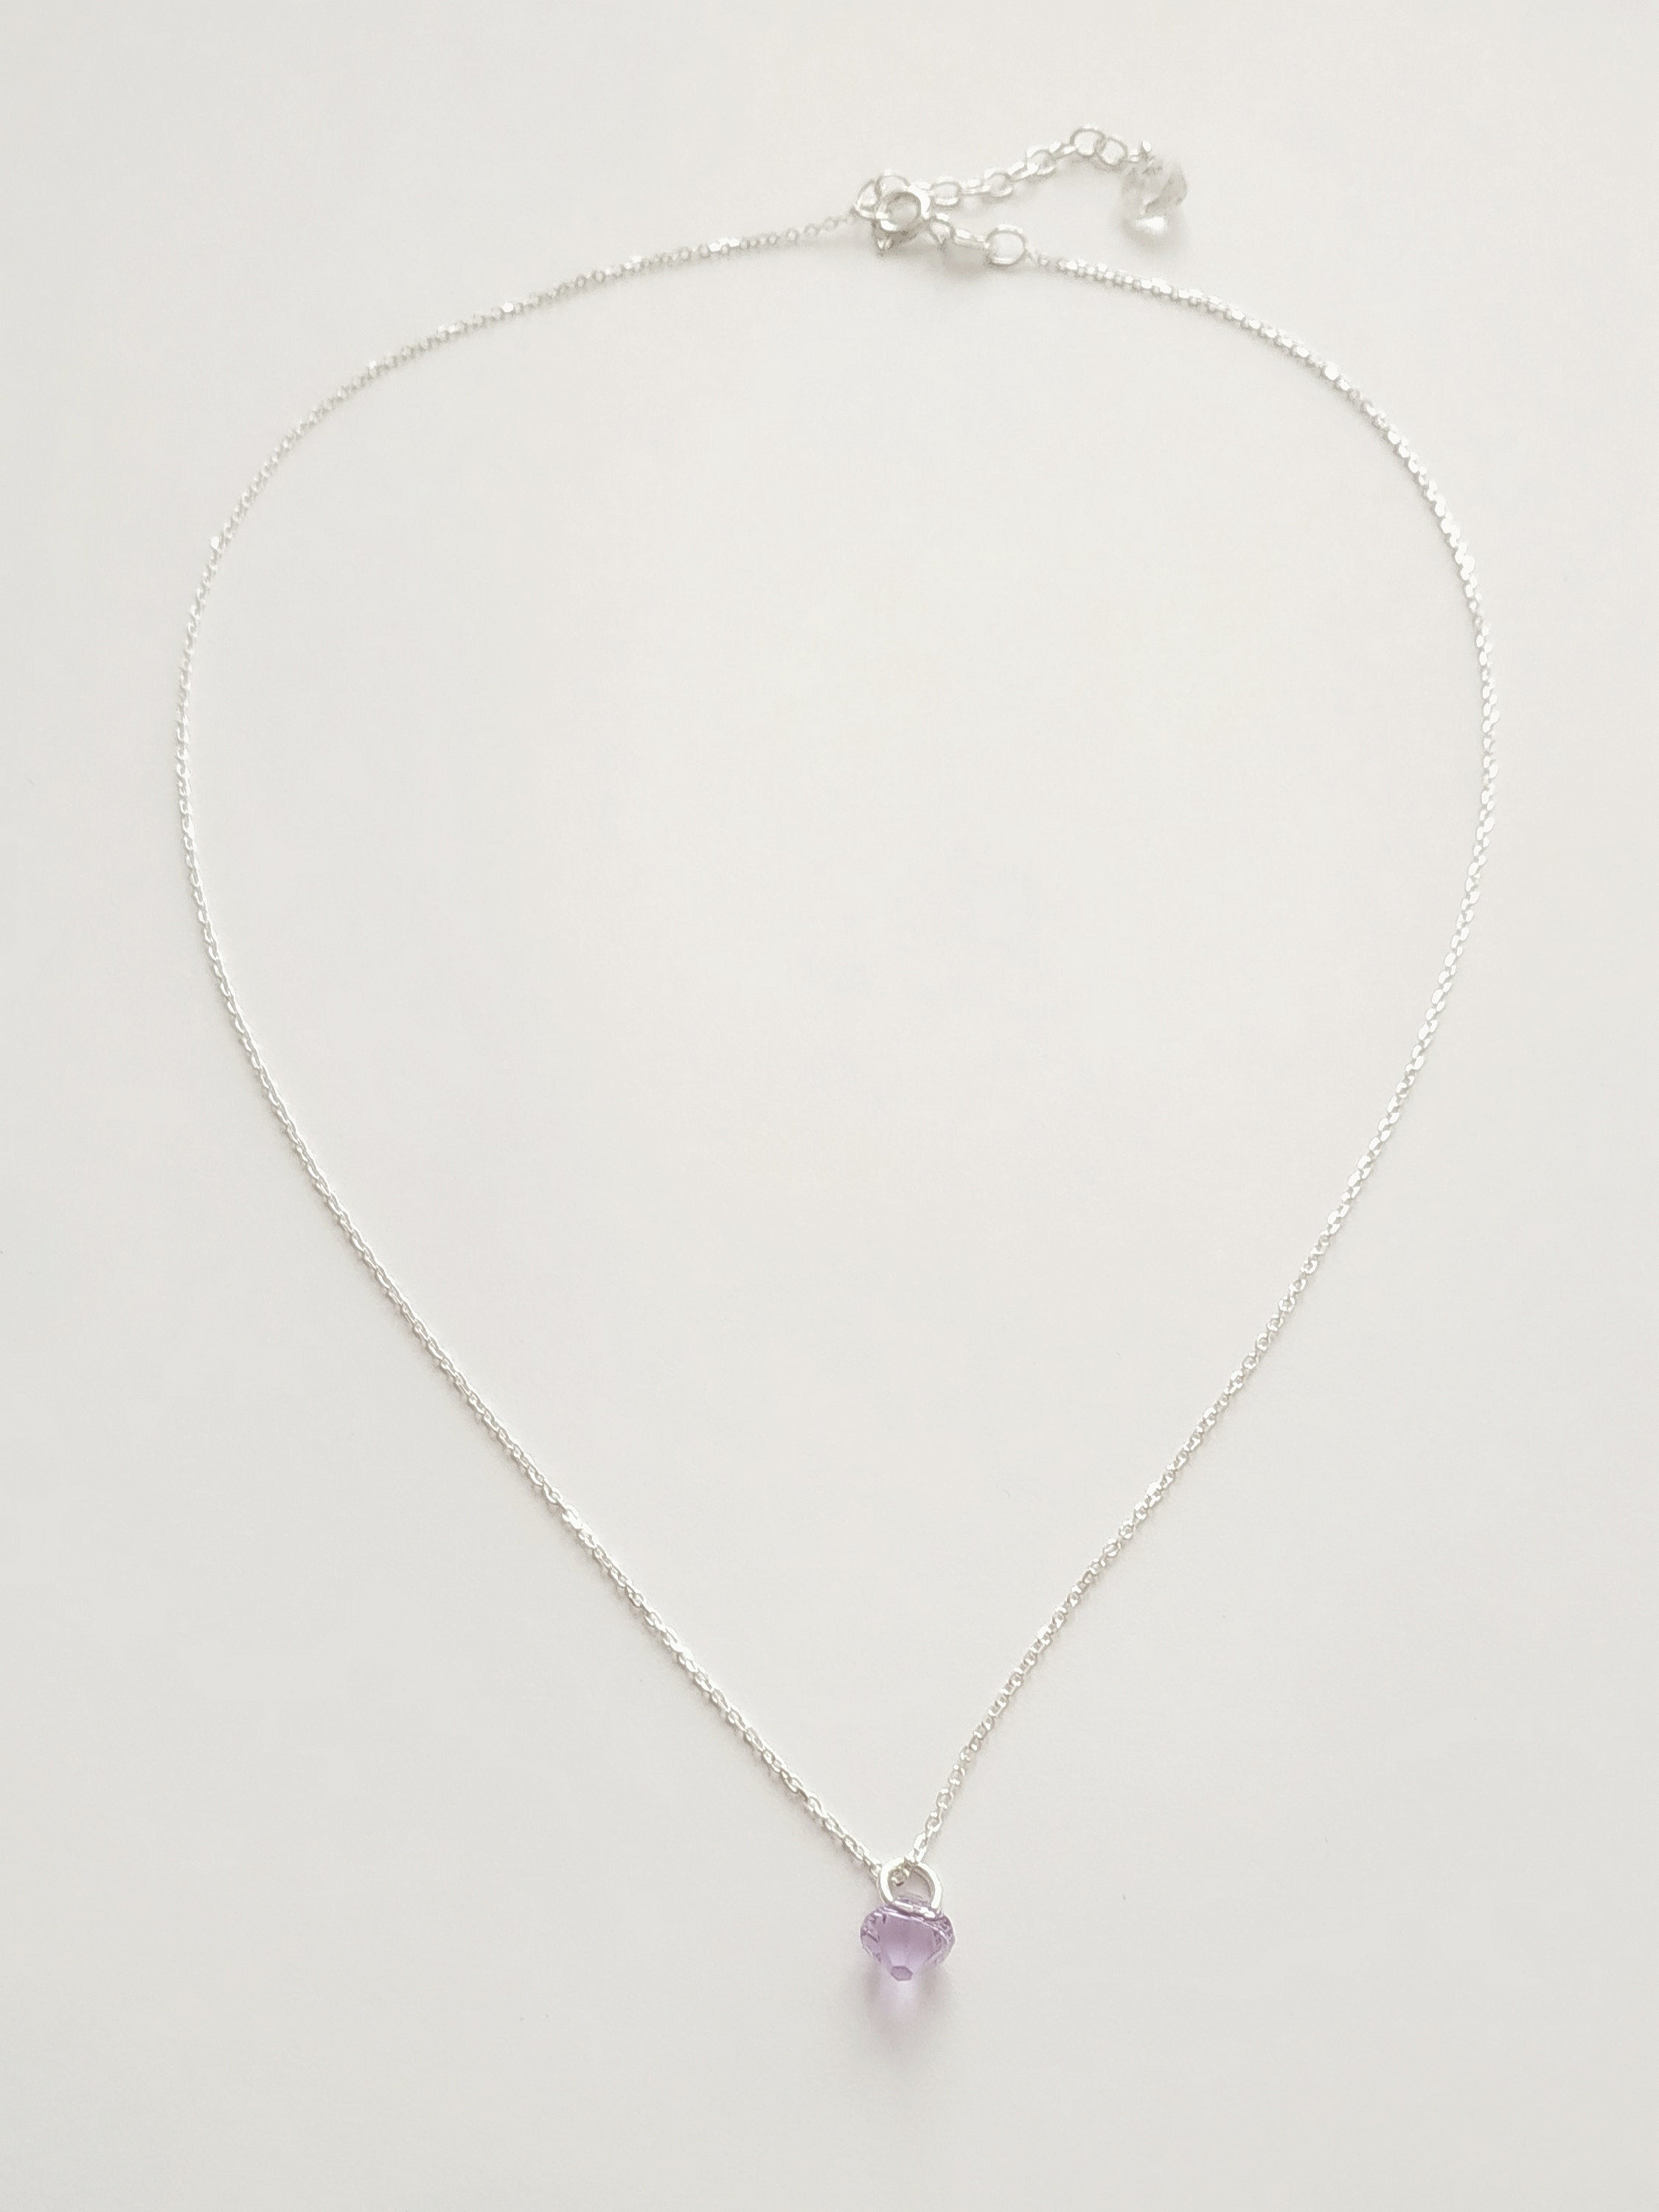 https://josefacreations.com/products/collier-chaine-argent-925-cristal-swarovski-amethyste